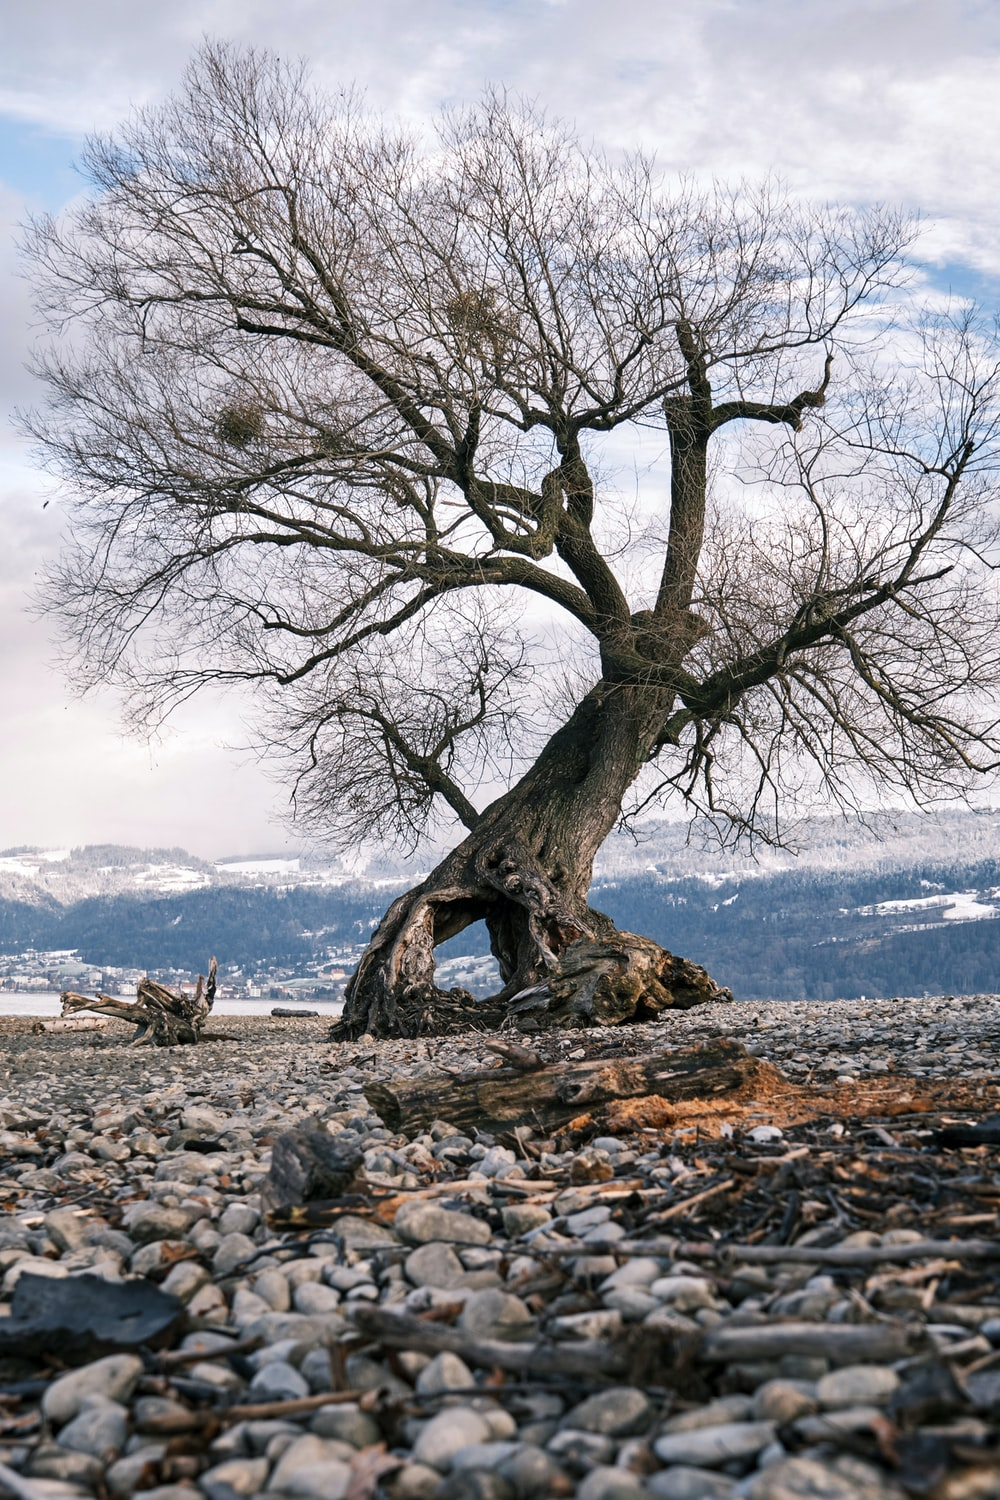 brown tree on gray sand near body of water during daytime